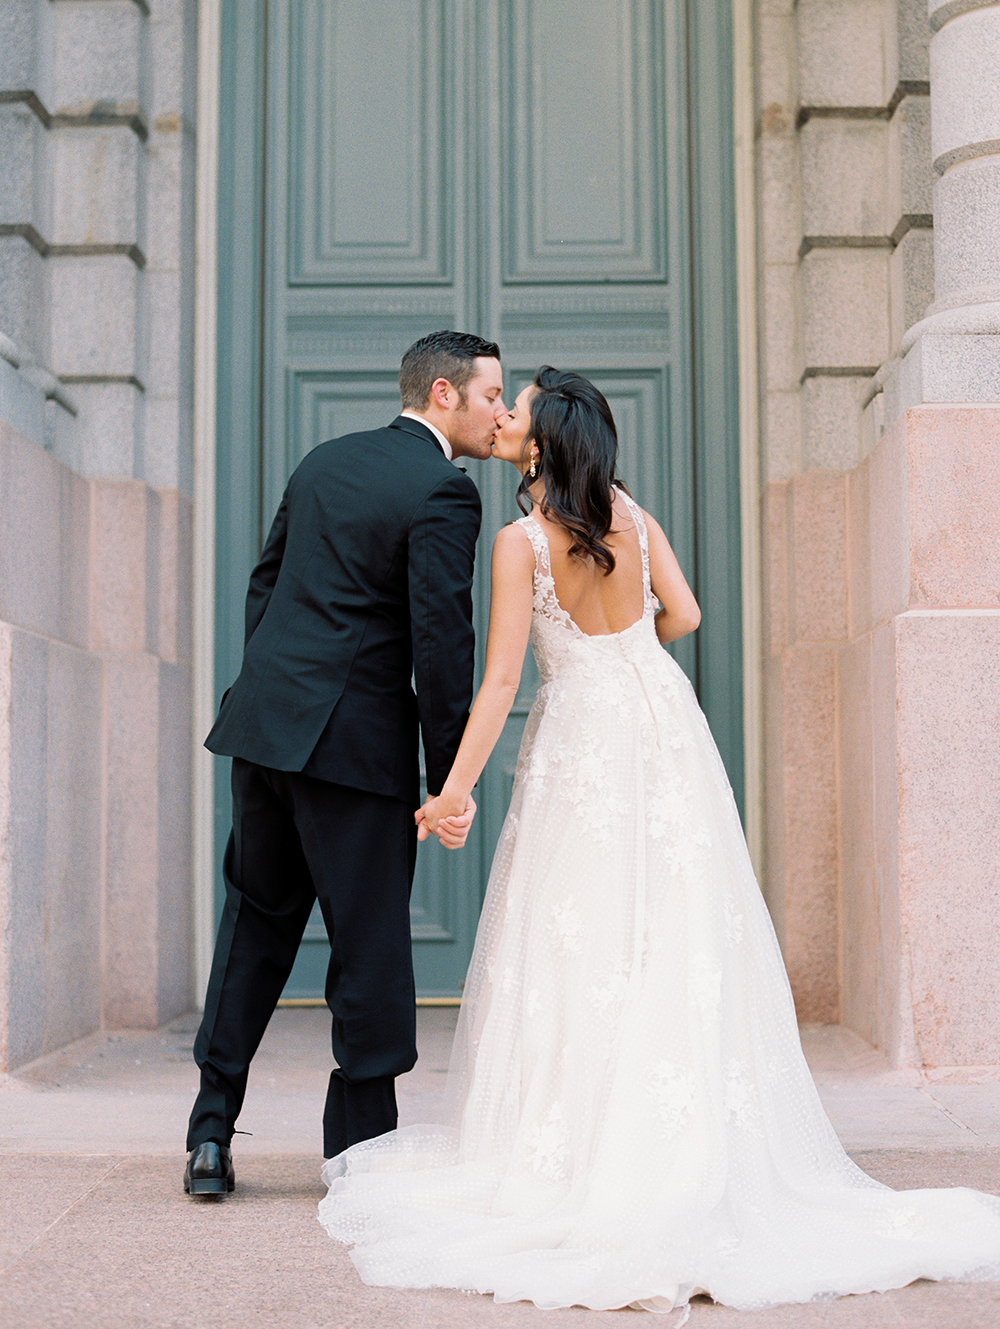 wedding photography - photo by Erin Stubblefield http://ruffledblog.com/chic-city-valentines-day-wedding-inspiration